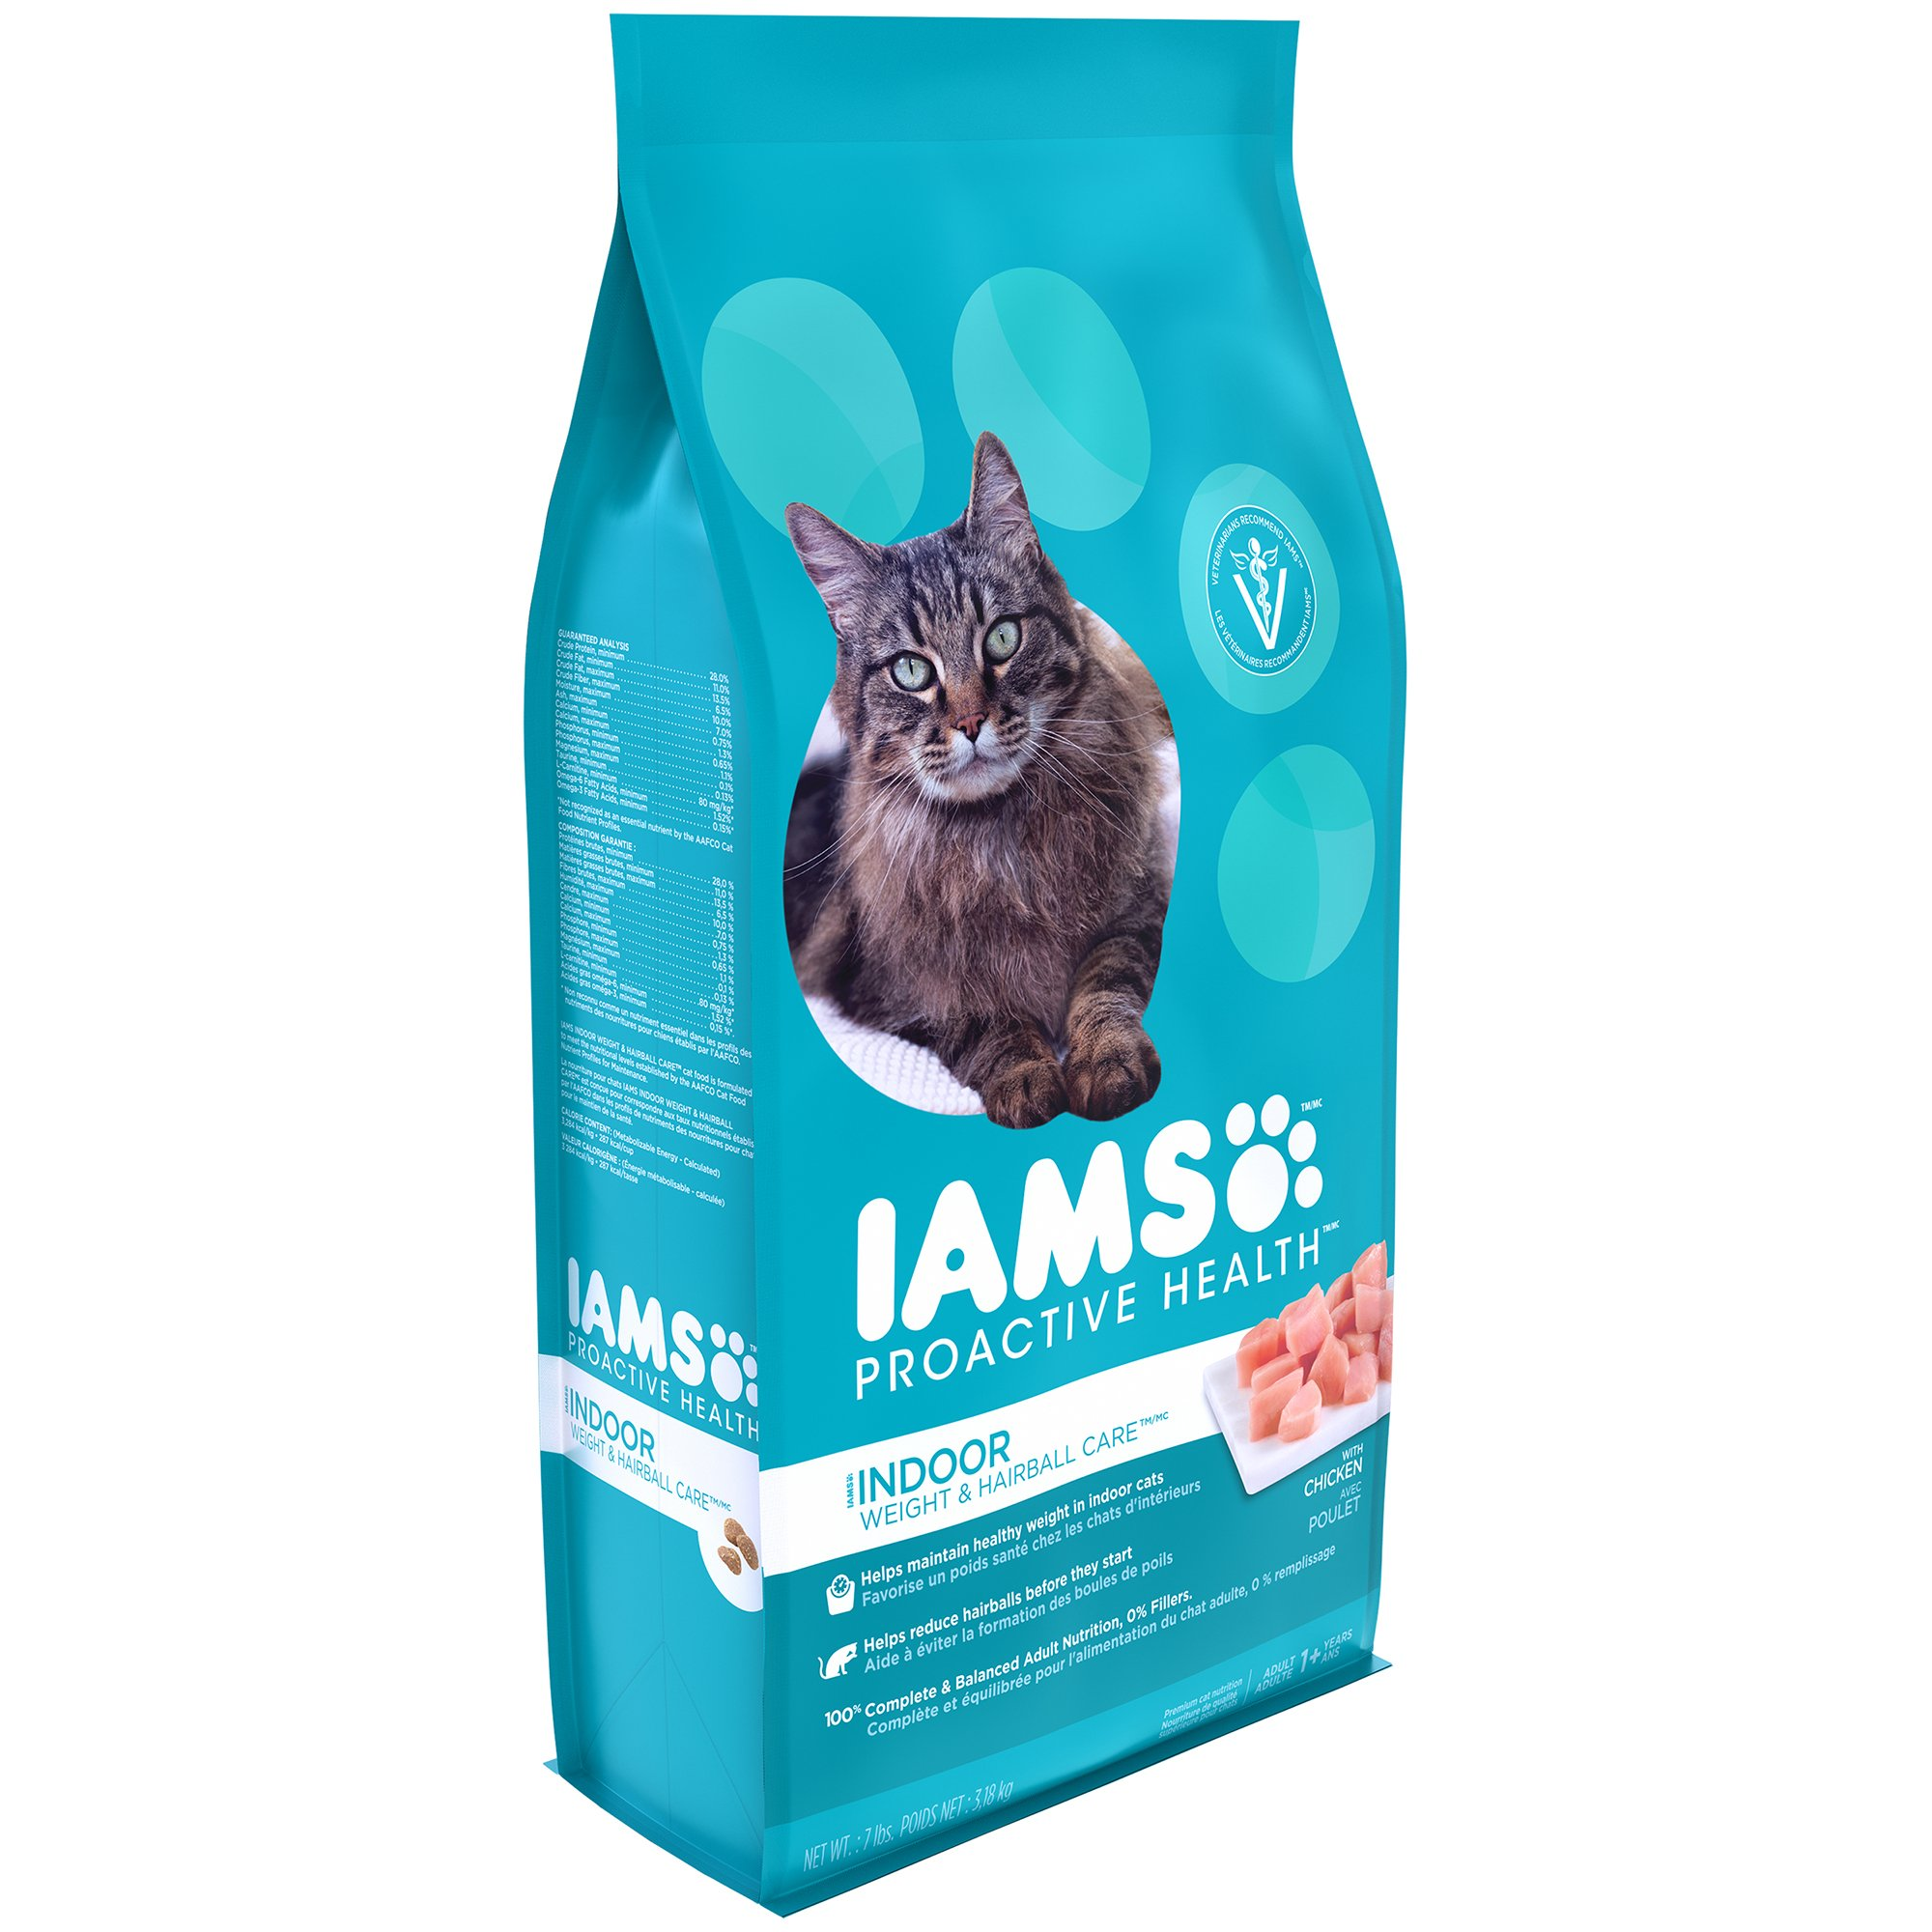 Iams Proactive Health Indoor Weight And Hairball Care Dry Cat Food, (1) 7 Pound Bag, Real Chicken In Every Bite (Packaging May Vary) by Iams